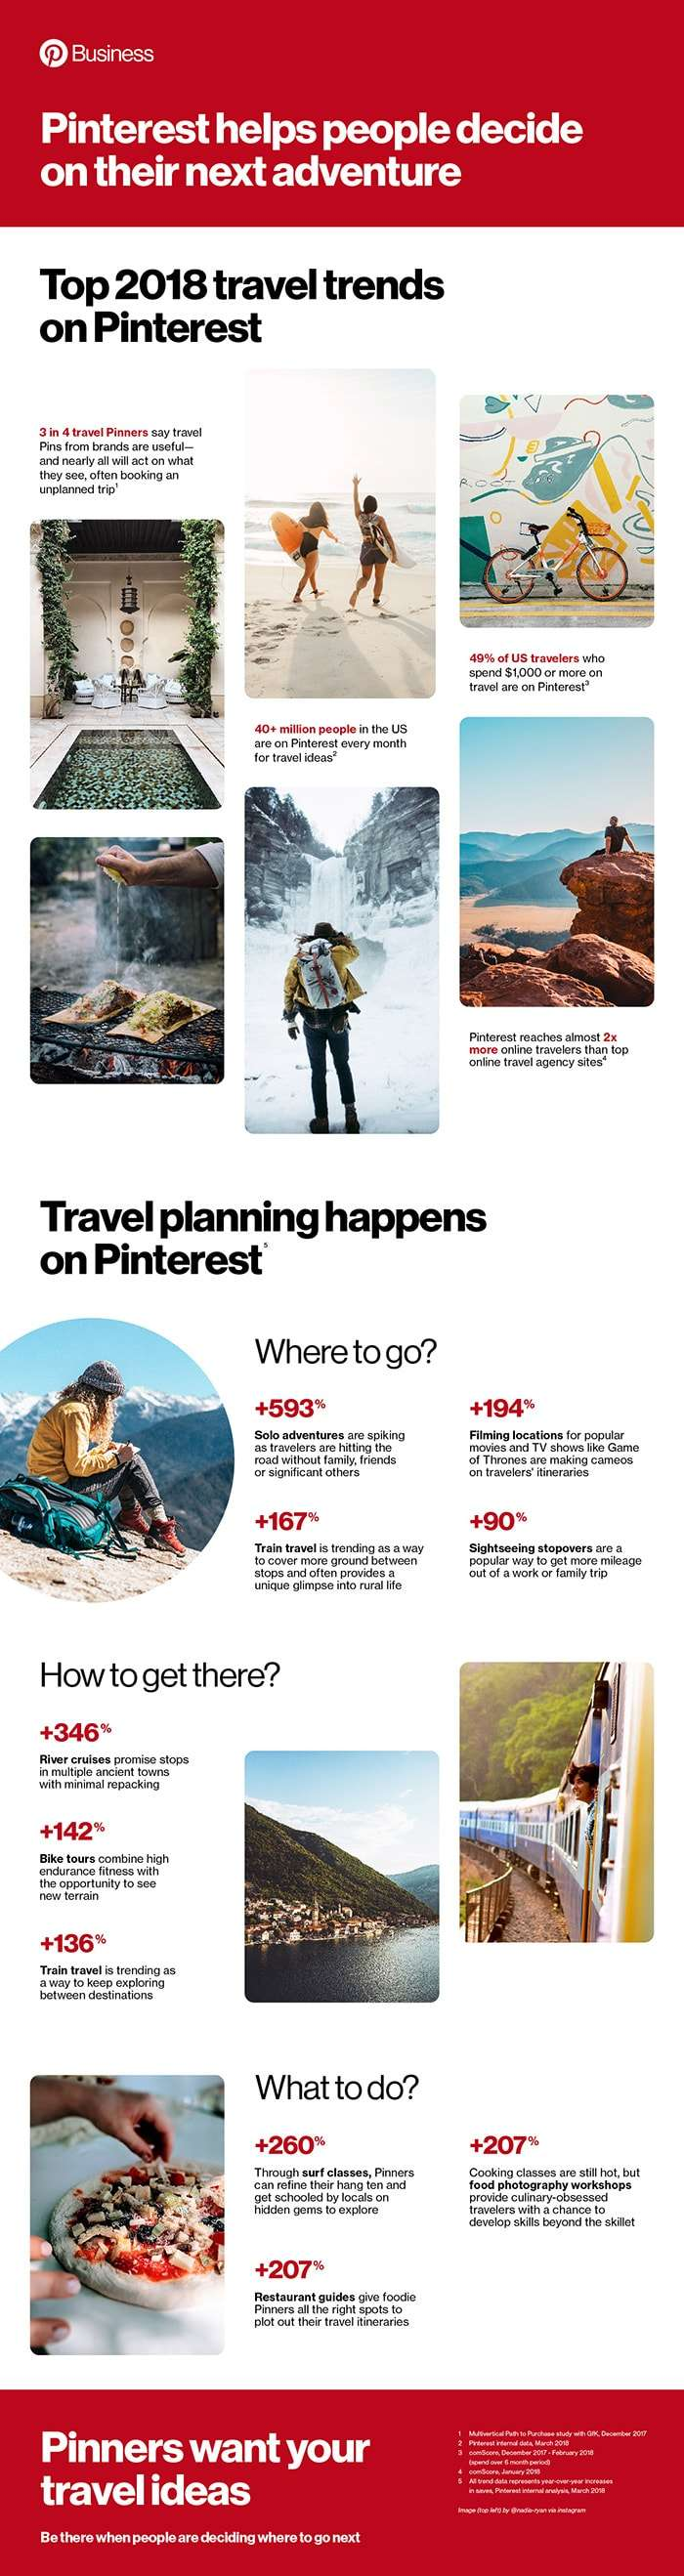 10 Hottest Pinterest Travel Trends You Need to Know for Marketing - Have you Tried these Pinterest Marketing Tips for Tourism?